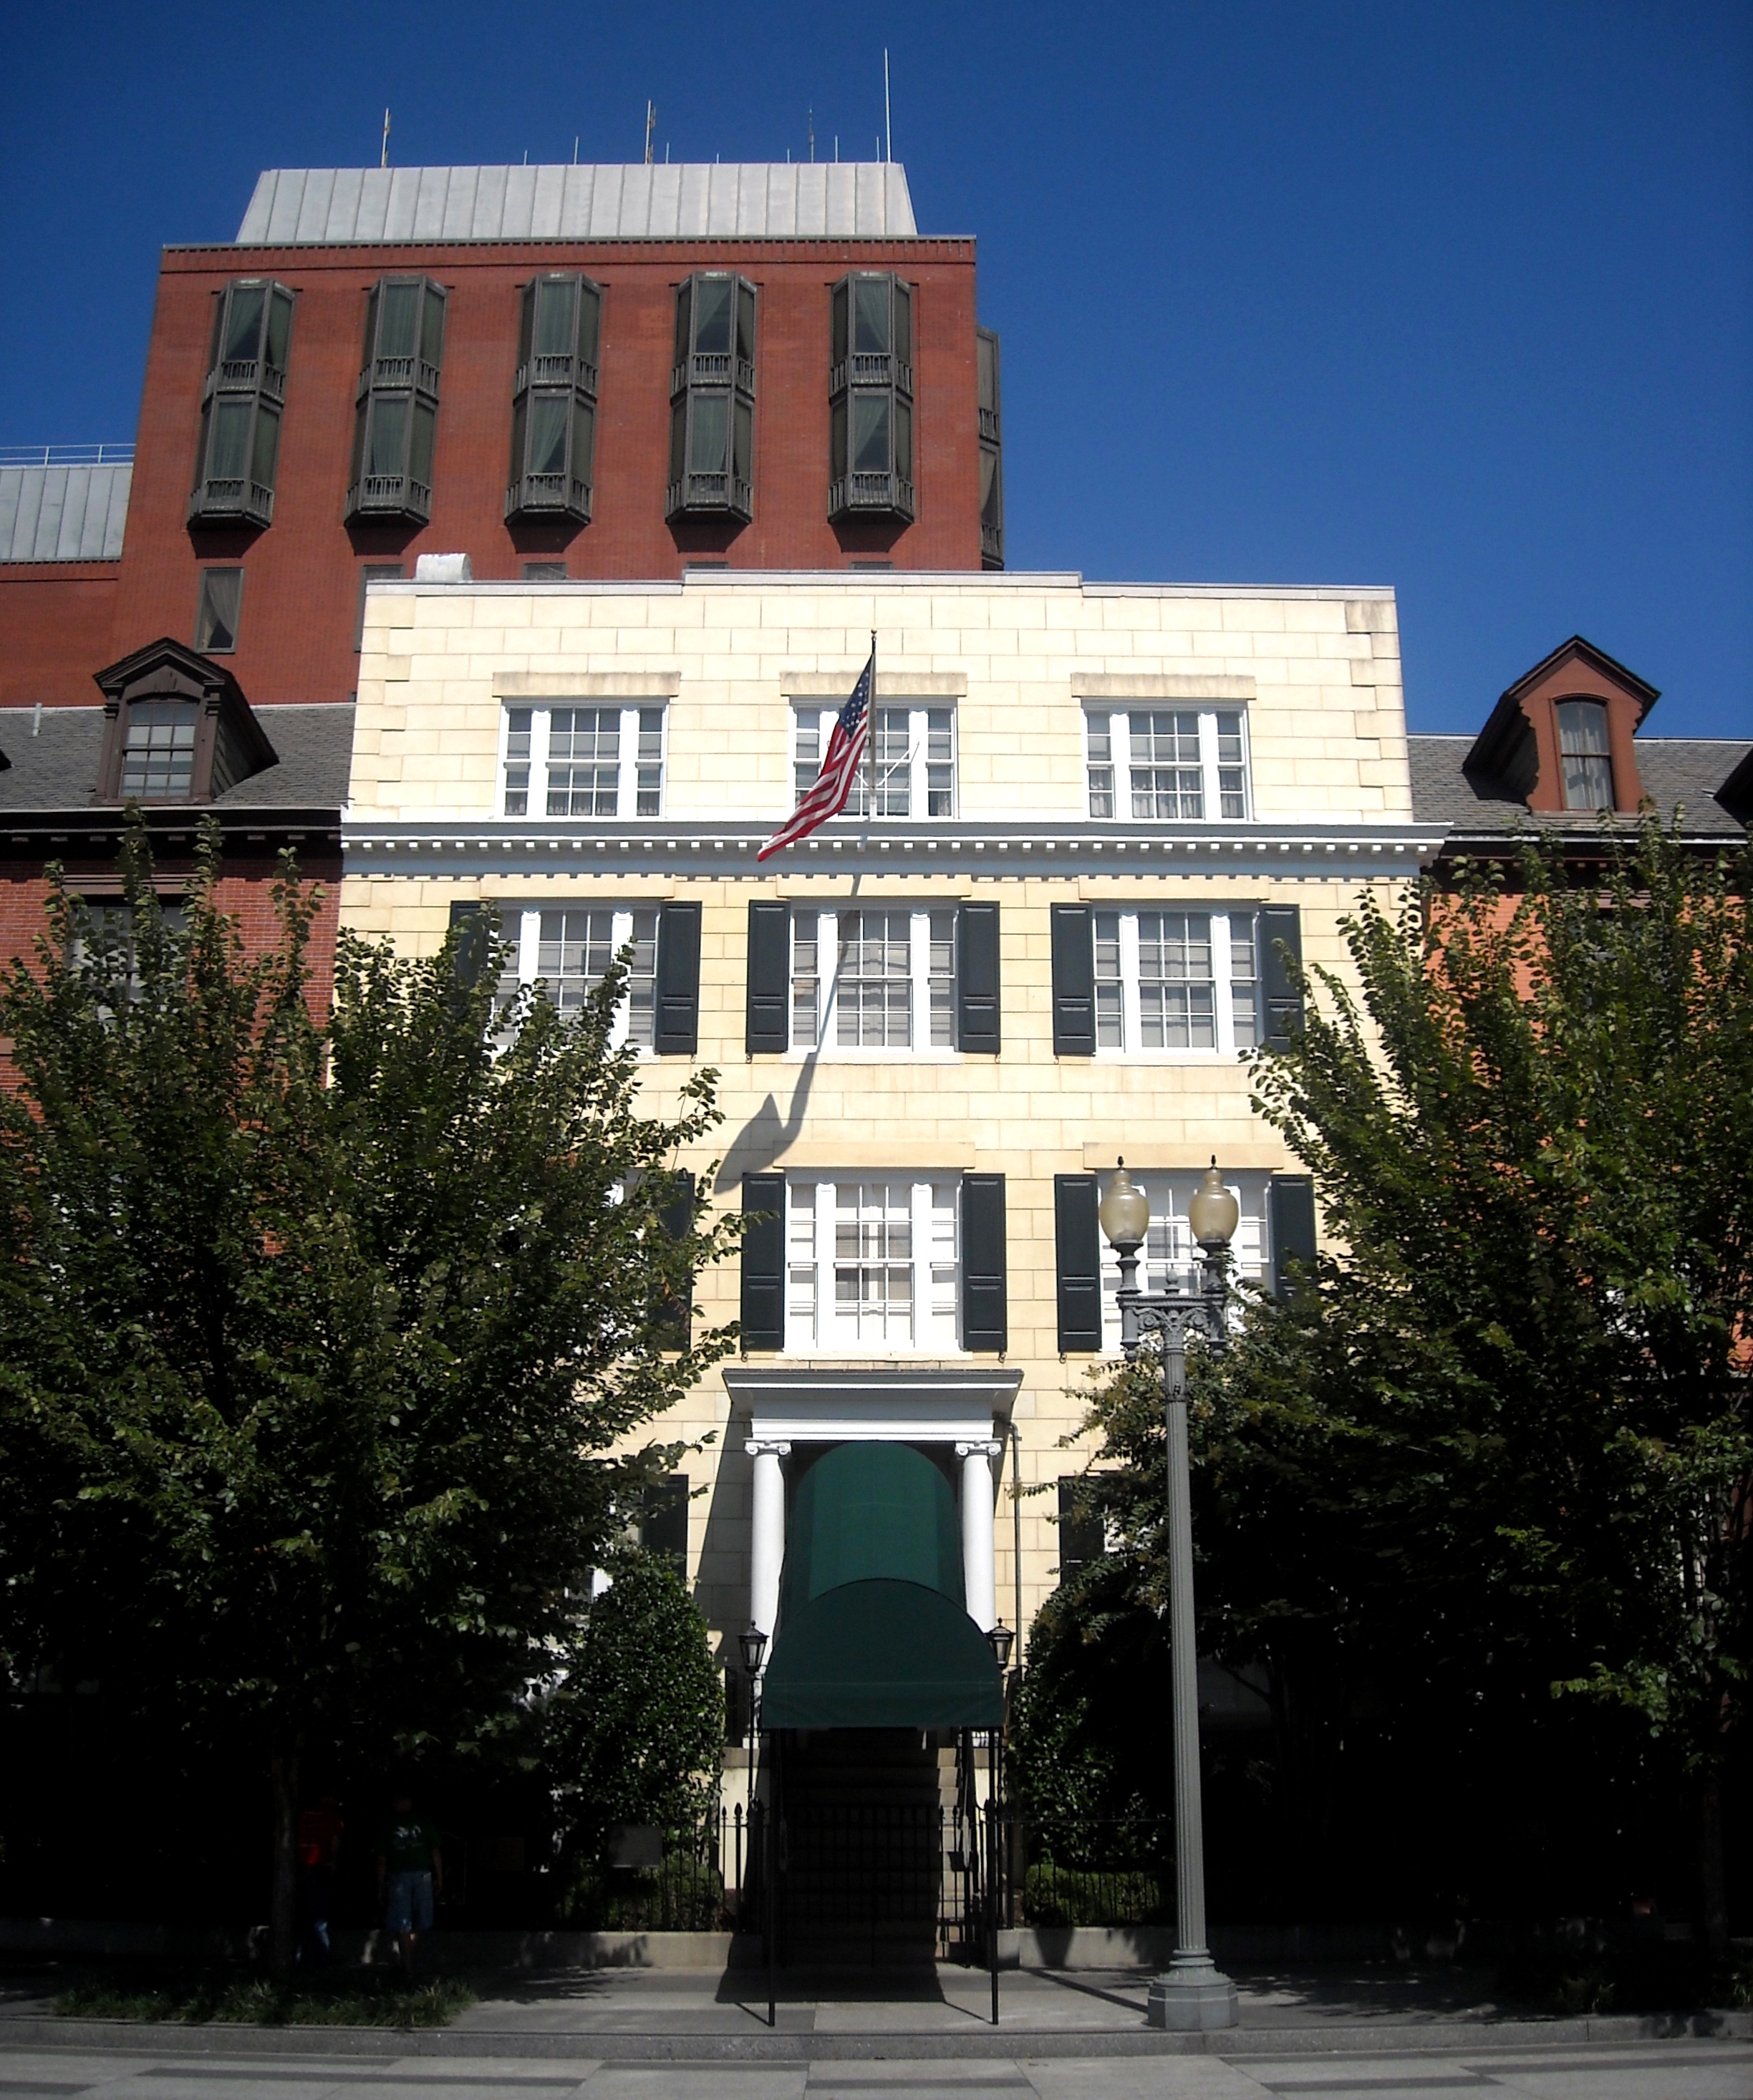 Blair House is known as the President's Guest House. It was purchased by the U.S. government in 1942 at the urging of President Franklin Roosevelt.